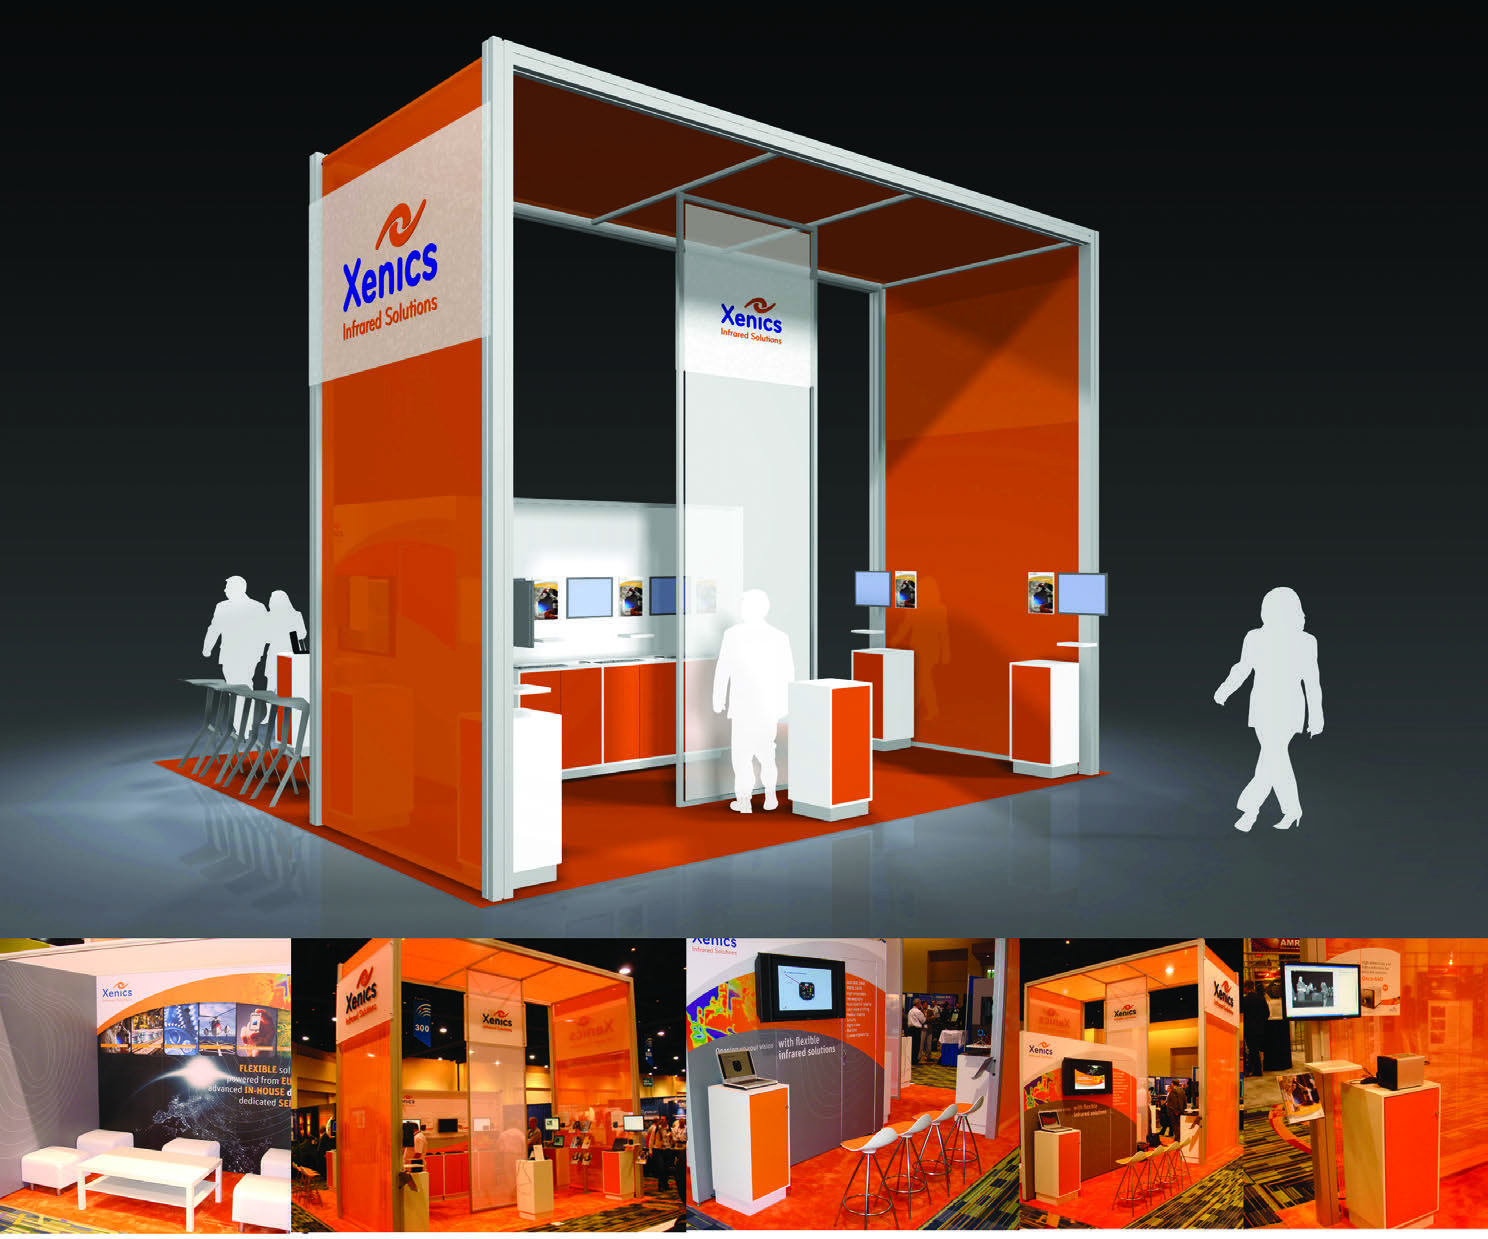 Exhibit Rental – the fastest growing trend in the trade show industry